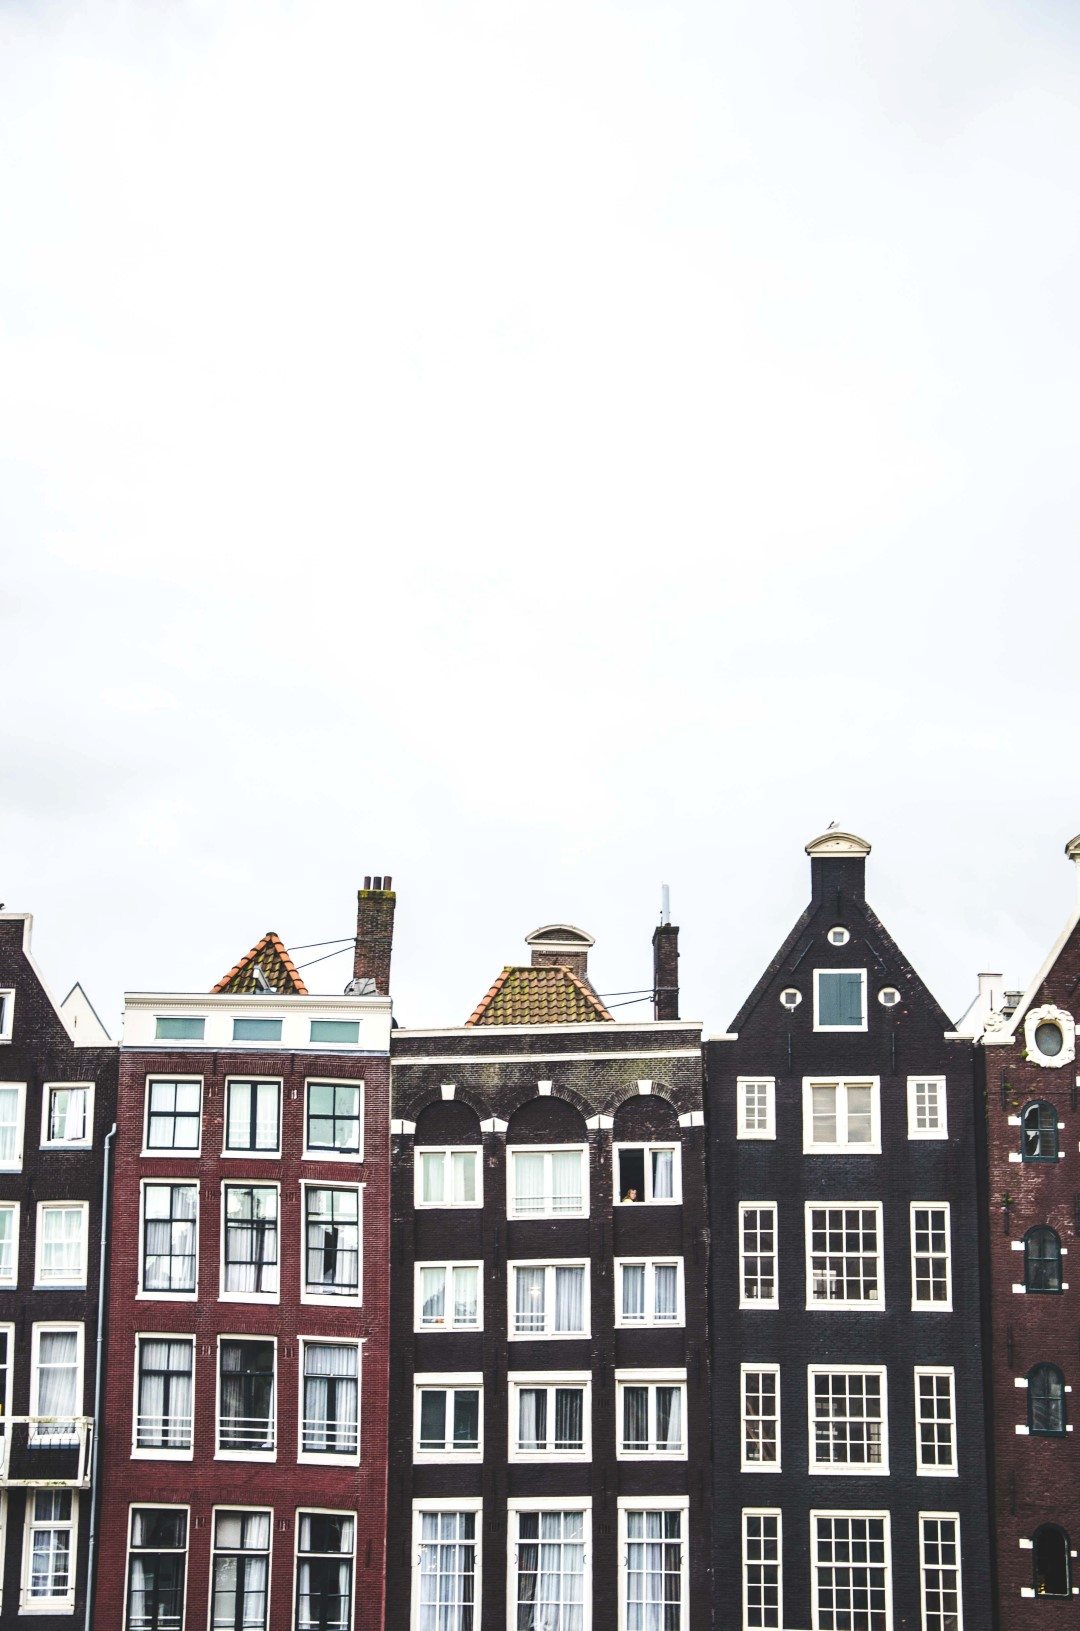 What is interesting about Amsterdam - A city of surprises, canals, and amazing architecture?